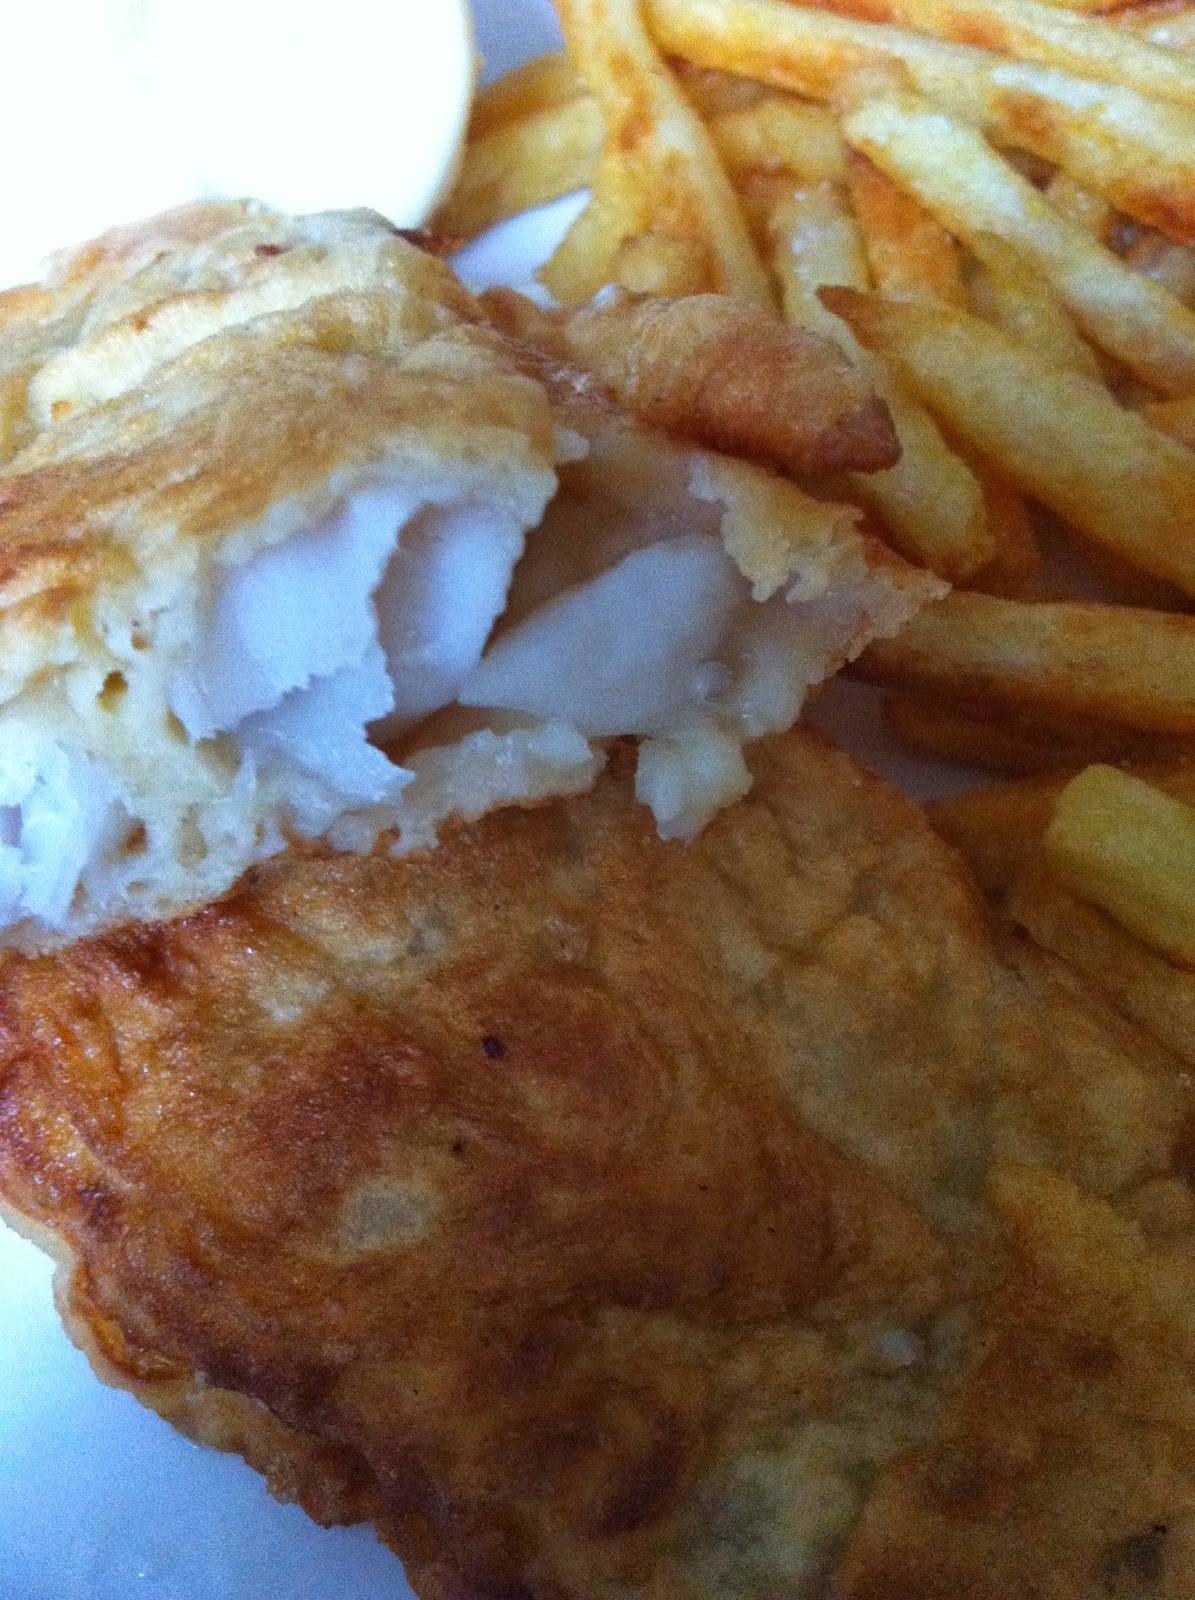 Fish 'N' chips in lemon batter